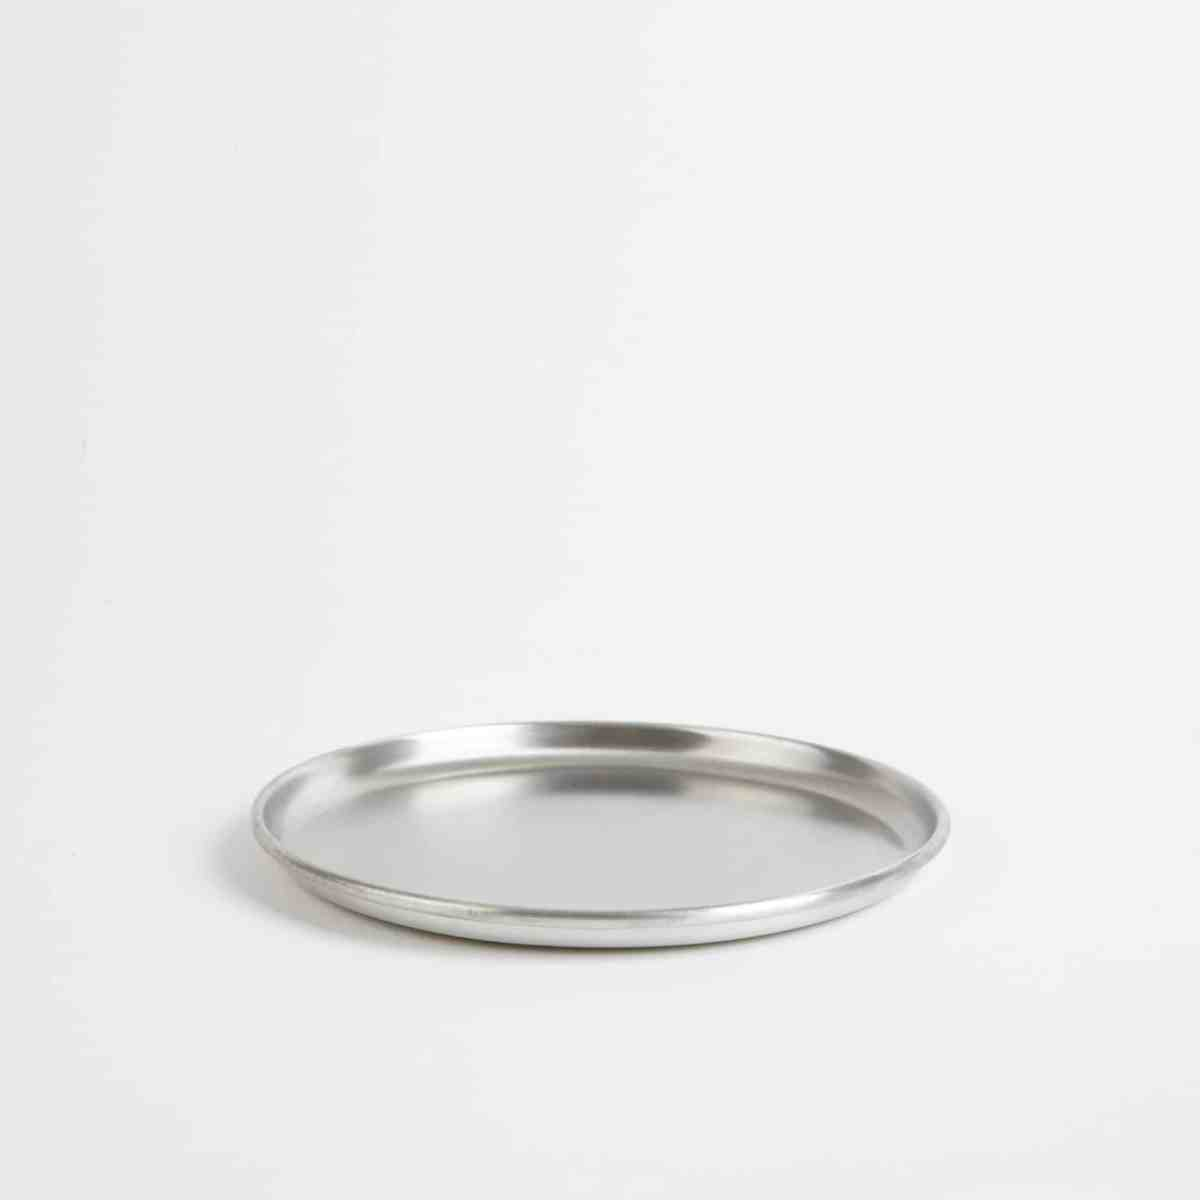 pewter-series-tableware-small-plate-another-country-001